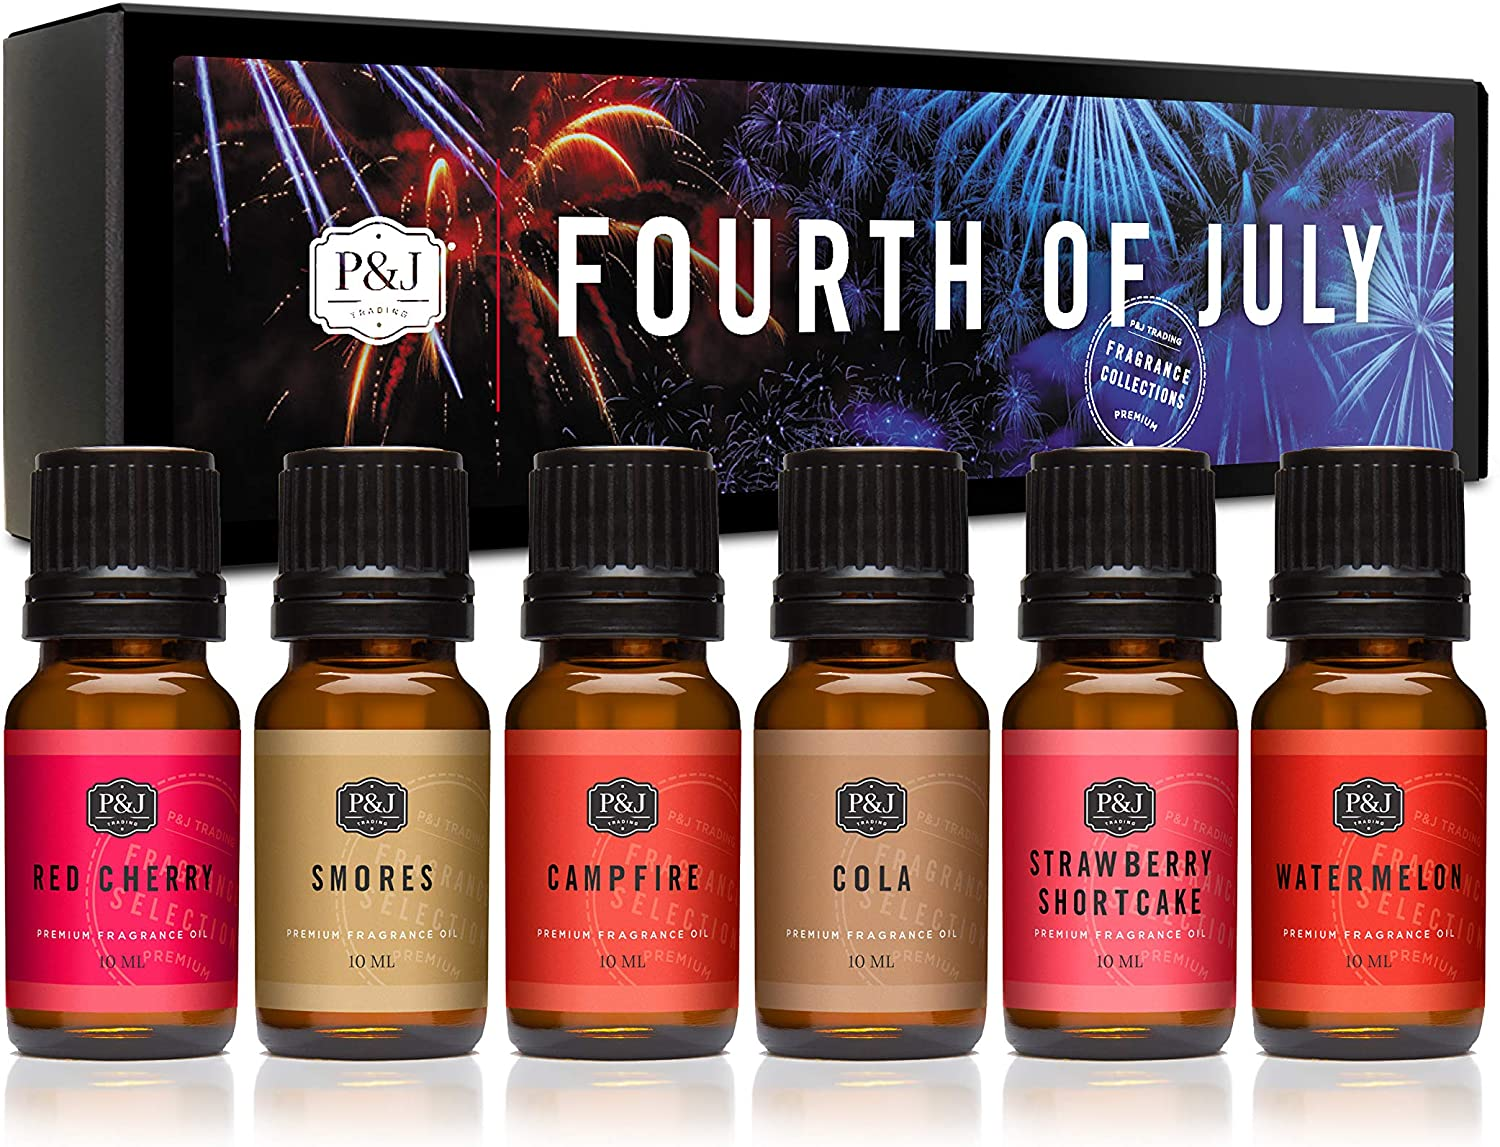 P&J Trading Fragrance Oil | Fourth of July Set of 6 - Premium Grade Fragrance Oils - Red Cherry,Smores,Campfire,Cola,Strawberry Shortcake, Watermelon